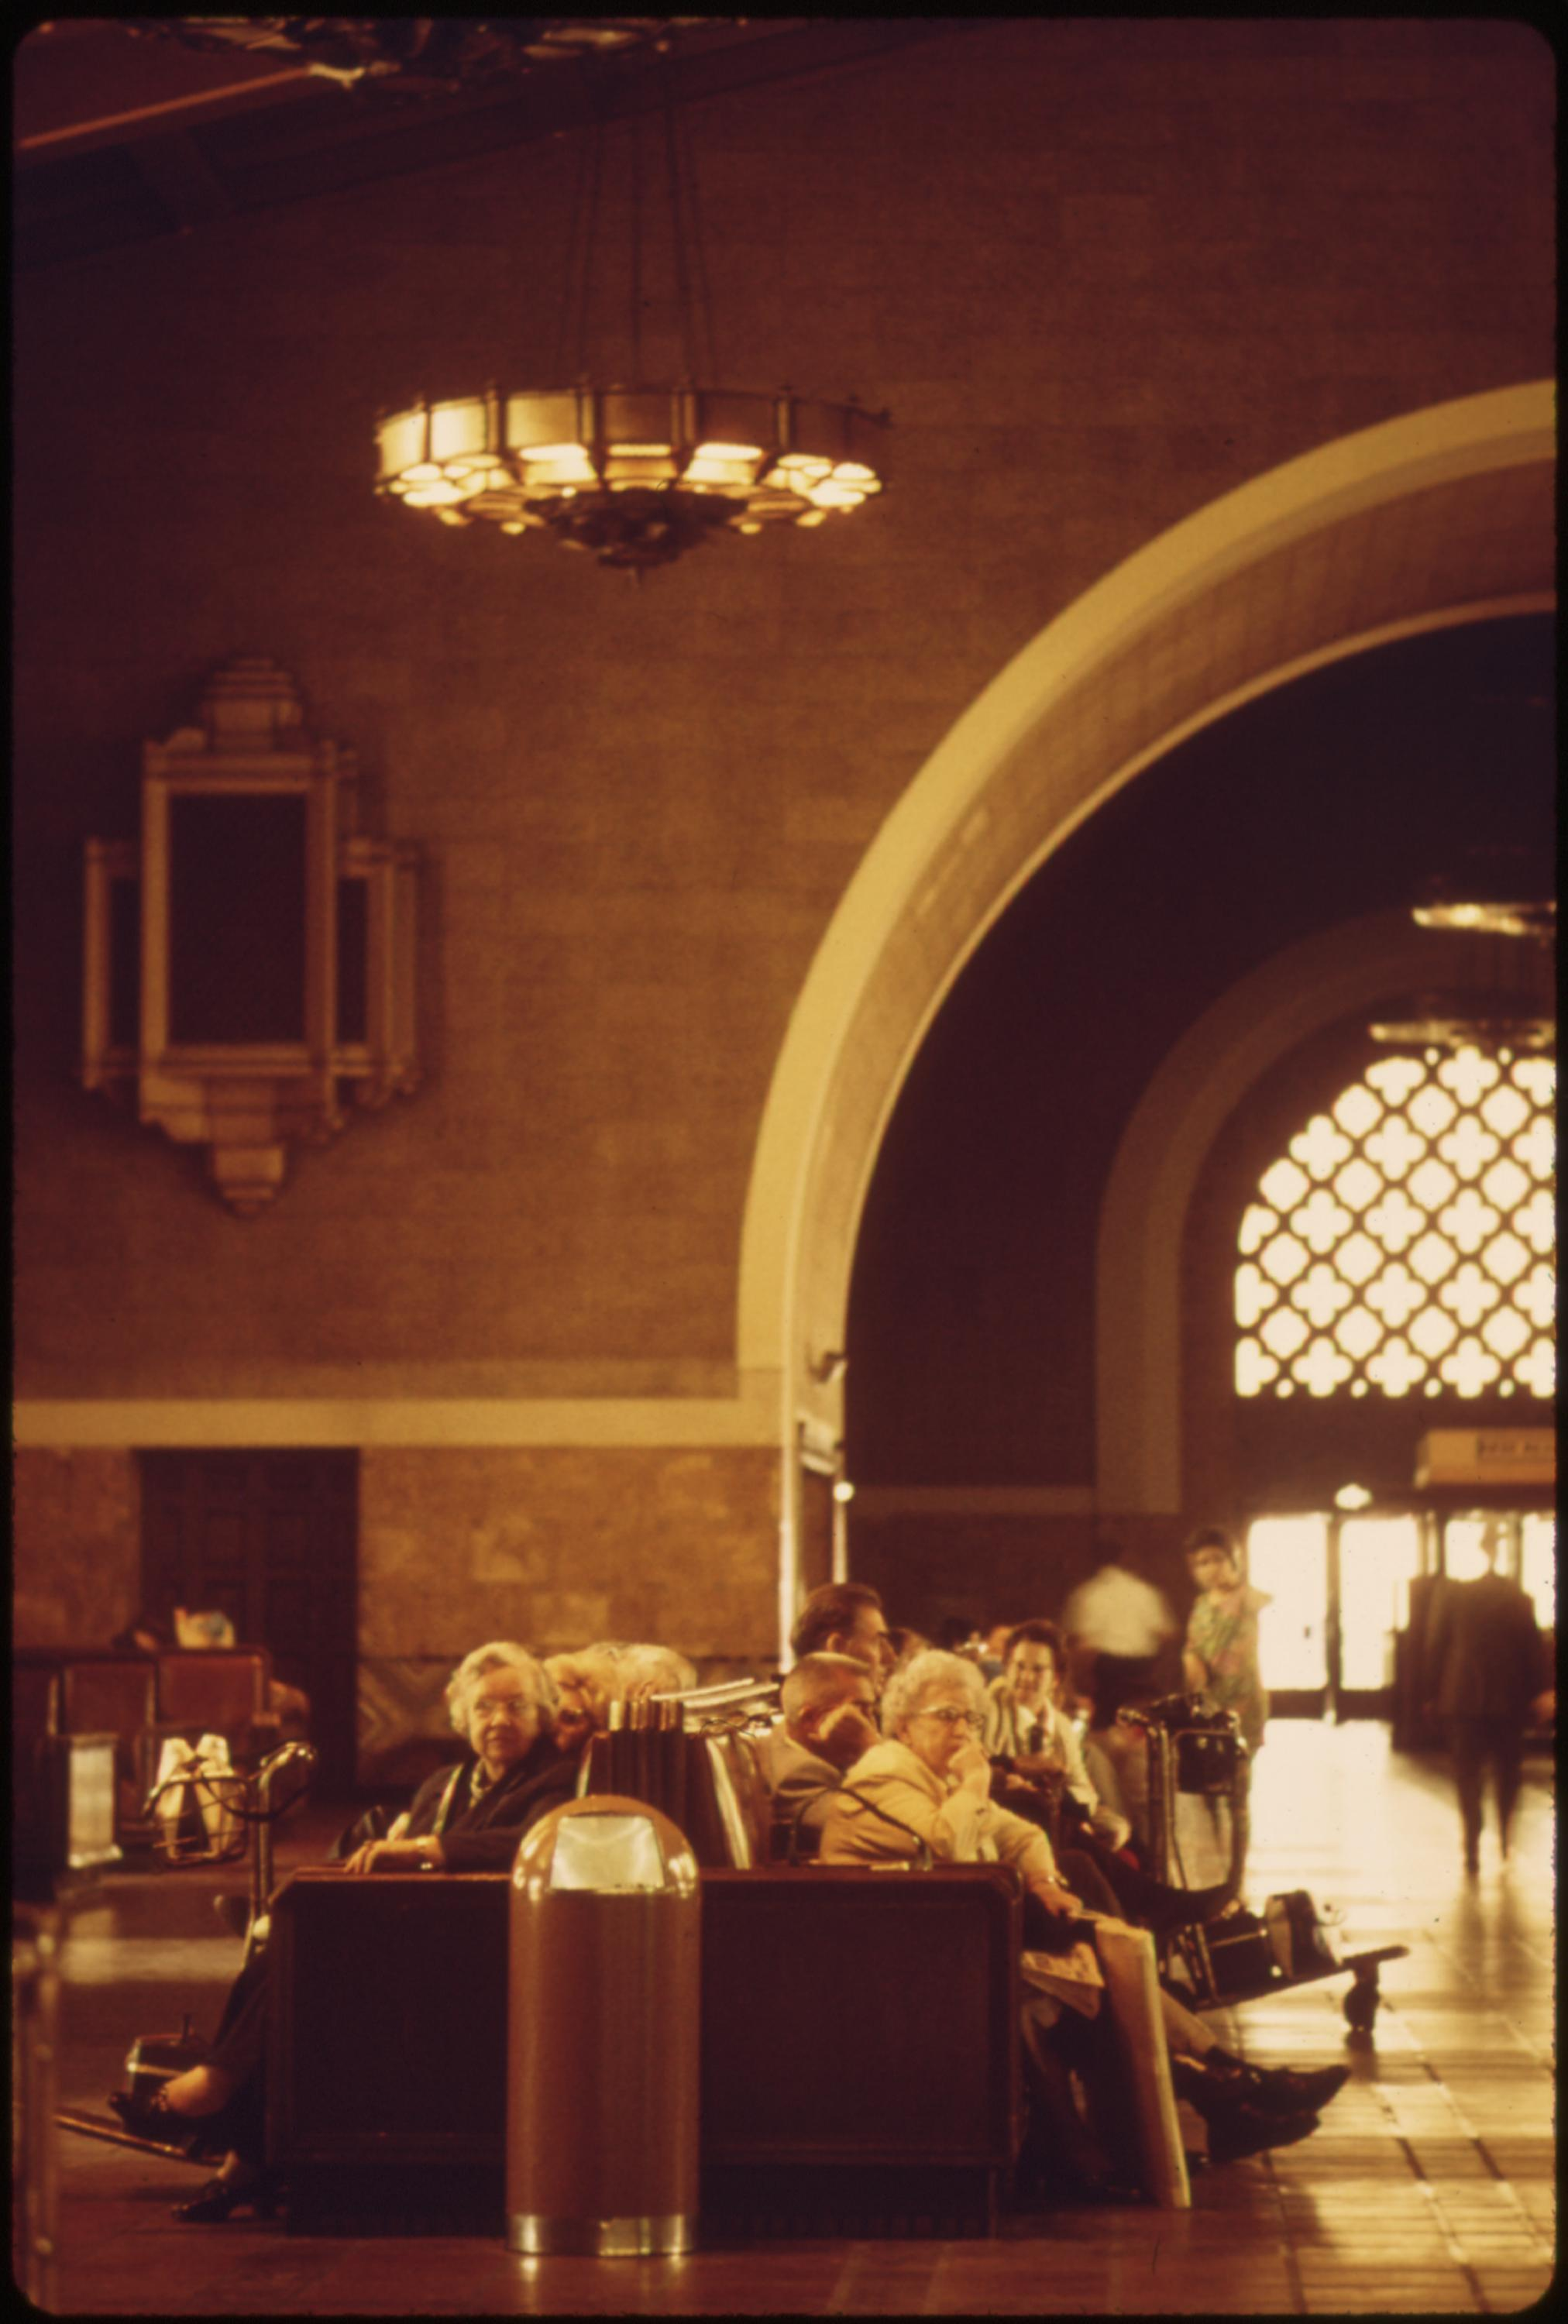 Amtrak passengers waiting for passenger trains in the interior of the Los Angeles Union Passenger Terminal, which was built for the 1932 Summer Olympics in that California city, May 1974